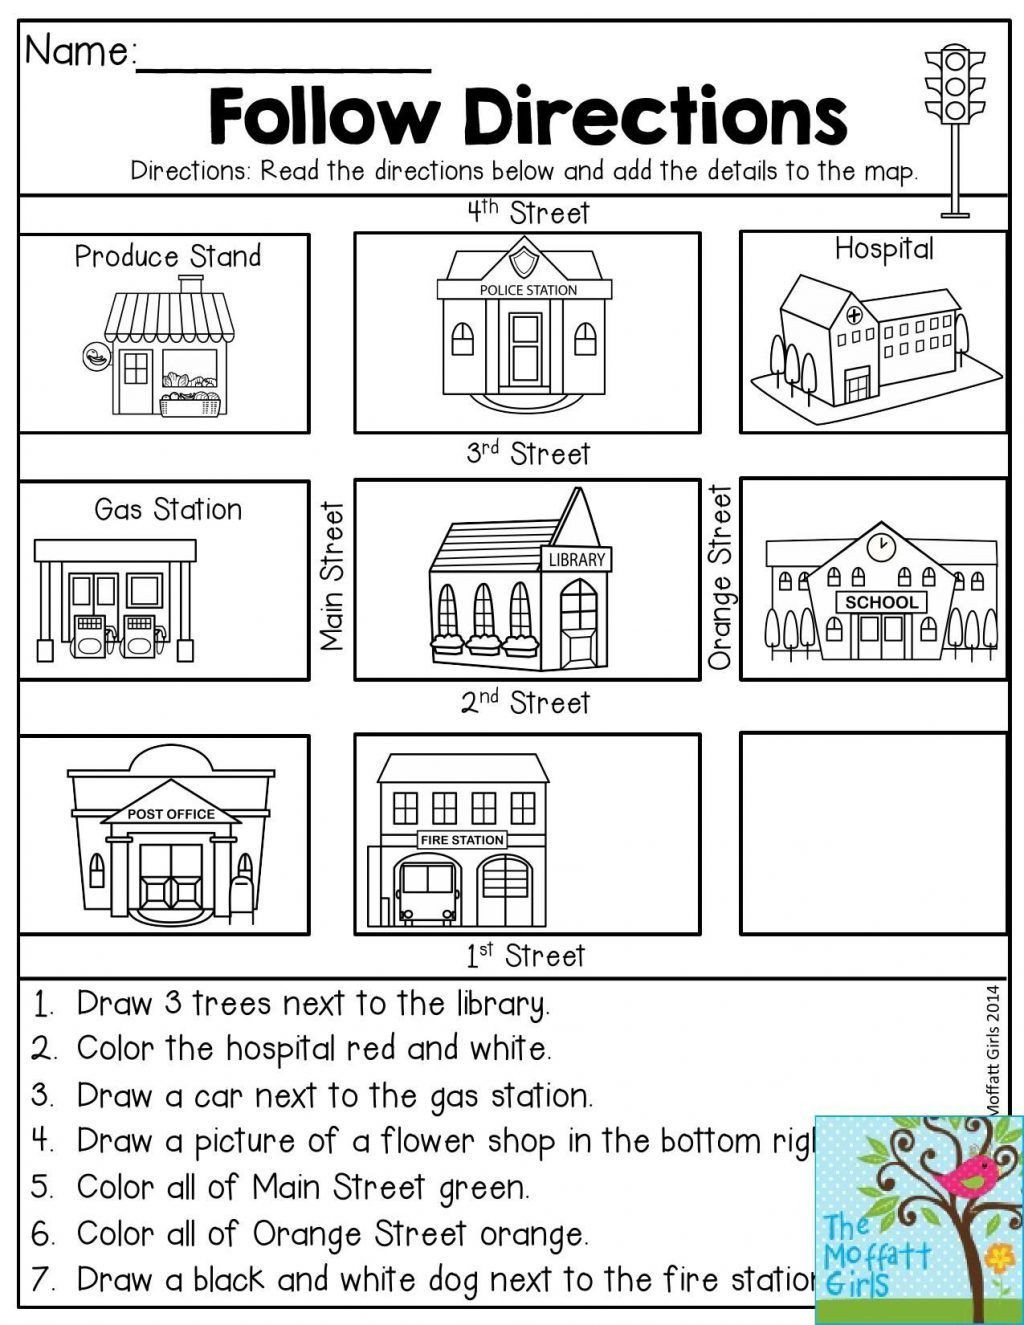 Printable Following Directions Worksheet Thunwarai Sa Ngasri Thunwarais ใน Pinterest